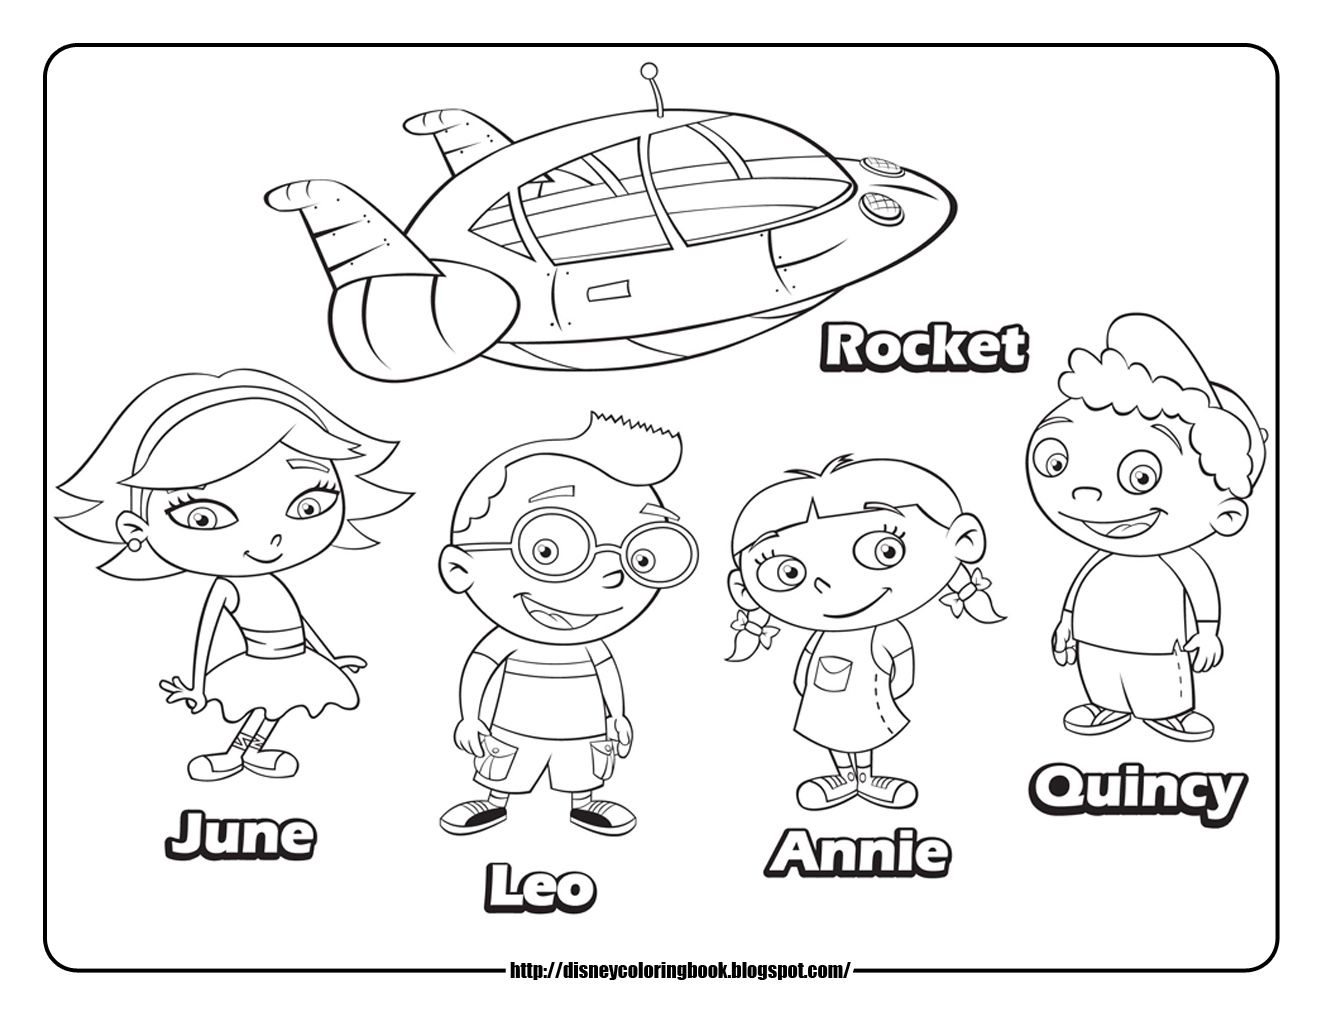 Download Little Einsteins Coloring Pages | Little Einsteins Bday ...